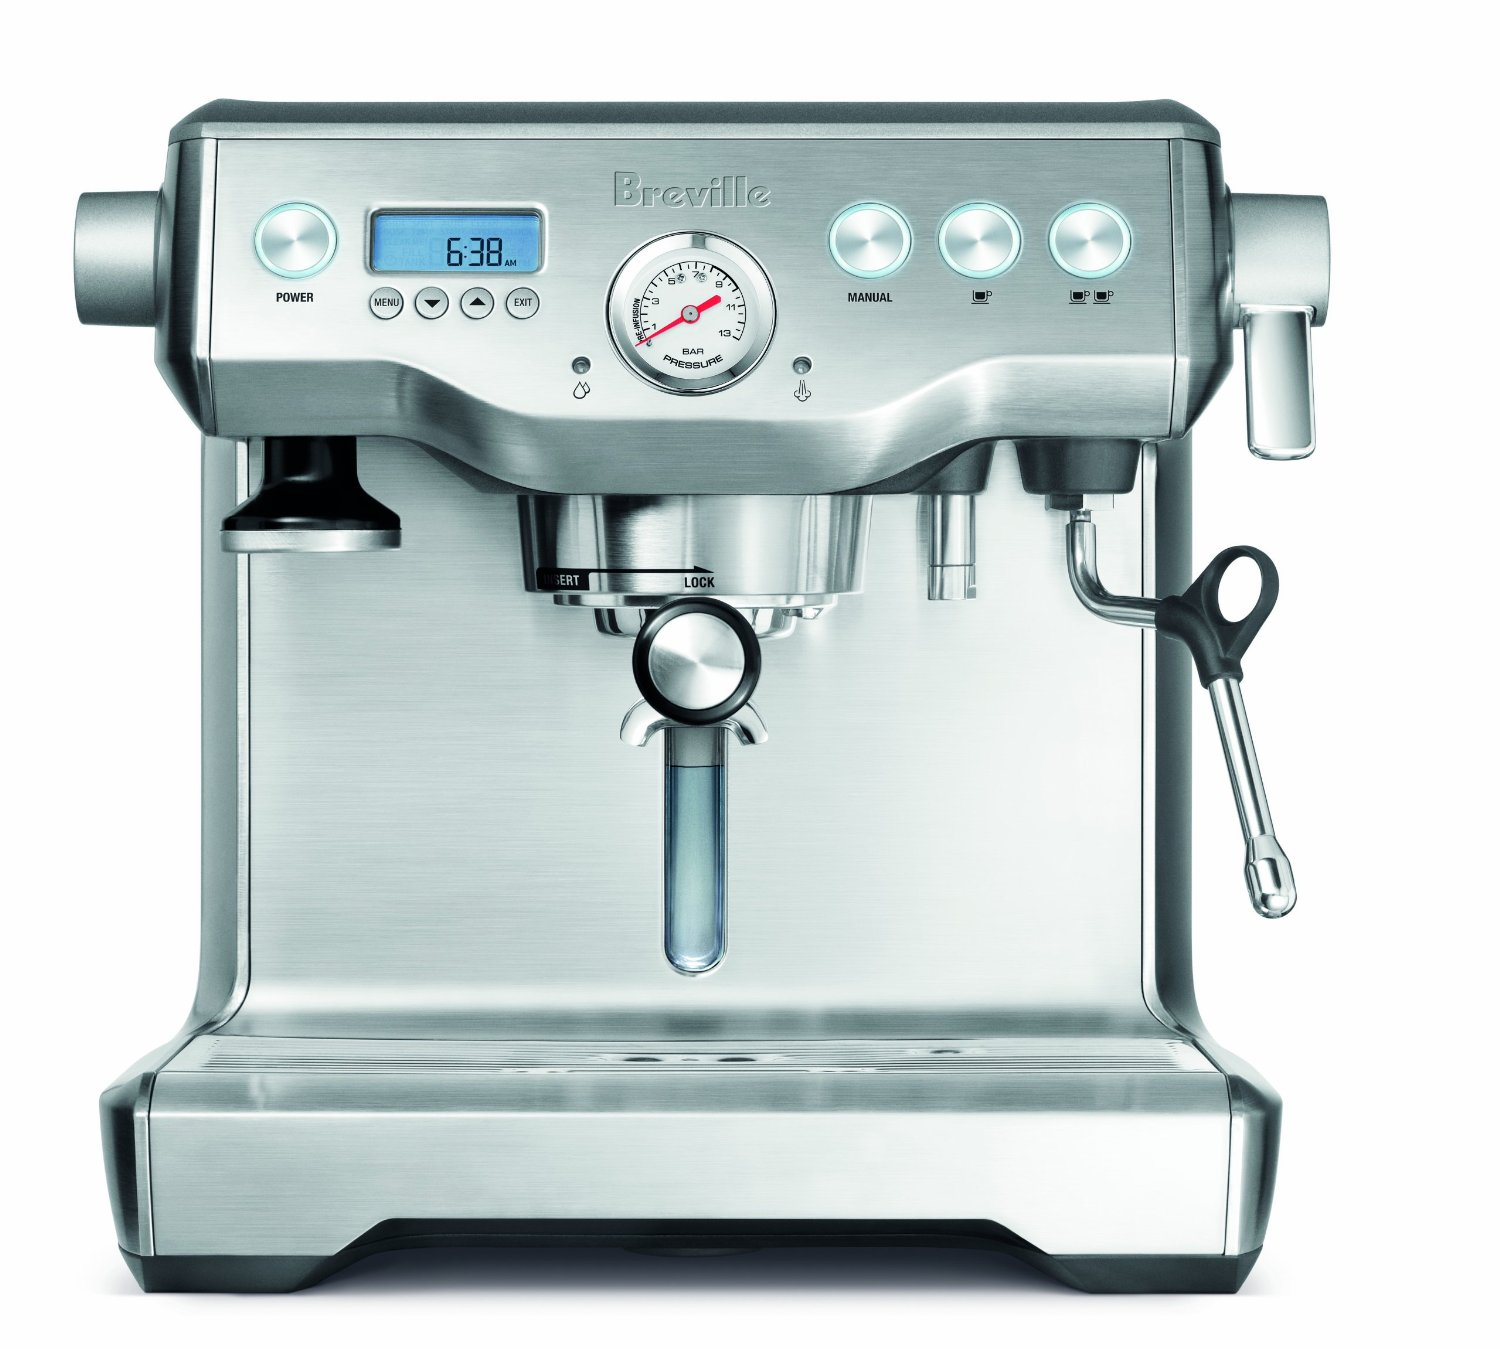 The Breville BES920XL Espresso Machine Reviewed! - BrownsCoffee.com